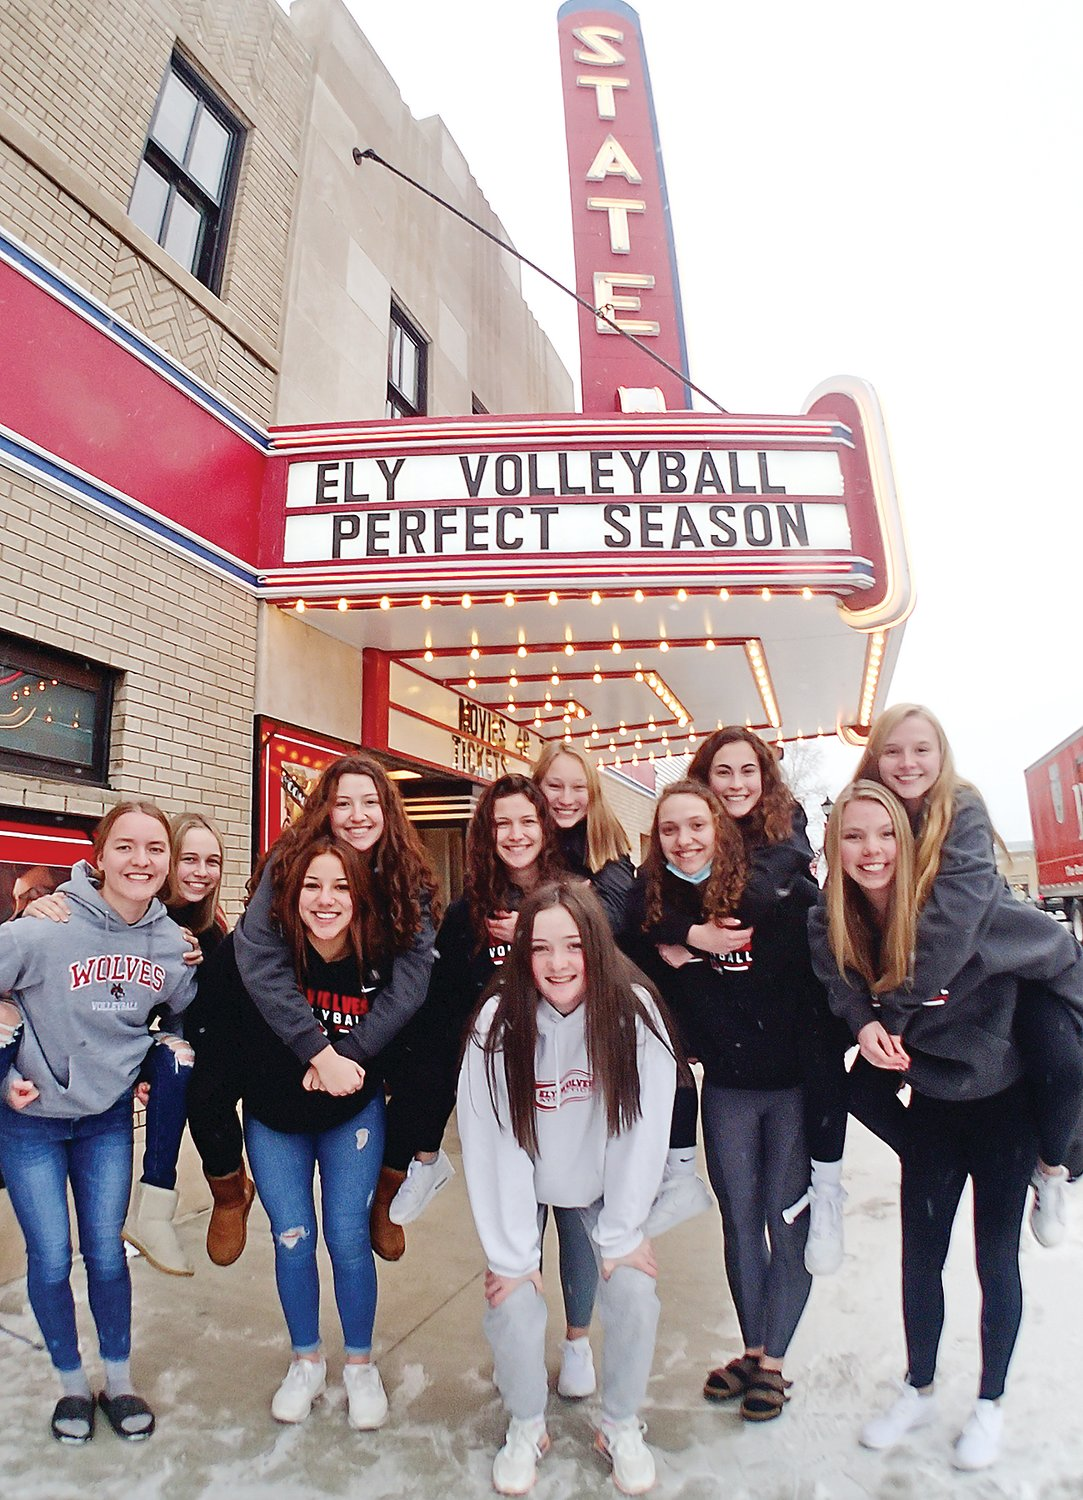 The Ely High School varsity girls volleyball team were honored at the Ely State Theater last week for going undefeated, with a perfect 12-0 record, for the season. With the play-offs canceled due to COVID-19 restrictions, the Timberwolves nonetheless relished their school record. Members of the team, McKenna Coughlin, Raven Sainio, Kate Coughlin, Katrina Seliskar, Annikka Mattson, Kellen Thomas, Courtney Eilrich, Madeline Kallberg, Rachel Coughlin, Madison Rohr and Charly Flom, gathered at the State Theater last Wednesday.